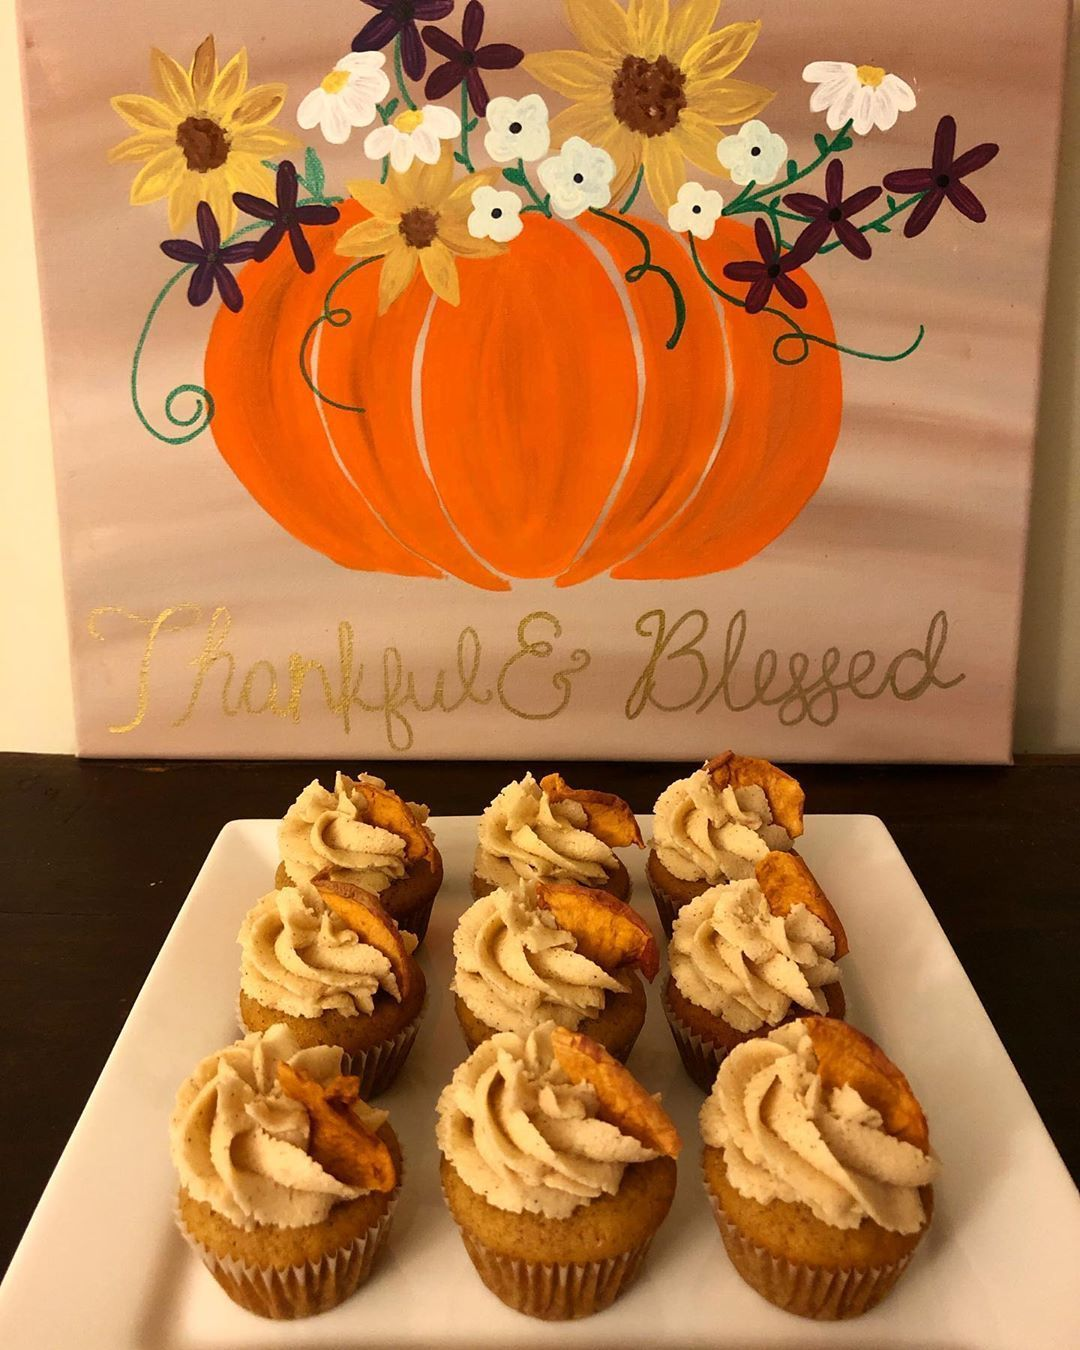 Bringing in the fall flavors with these apple cider cupcakes and brown sugar cinnamon buttercream  Bringing in the fall flavors with these apple cider cupcakes and brown sugar cinnamon buttercream #applecidercupcakeswithbrownsugar